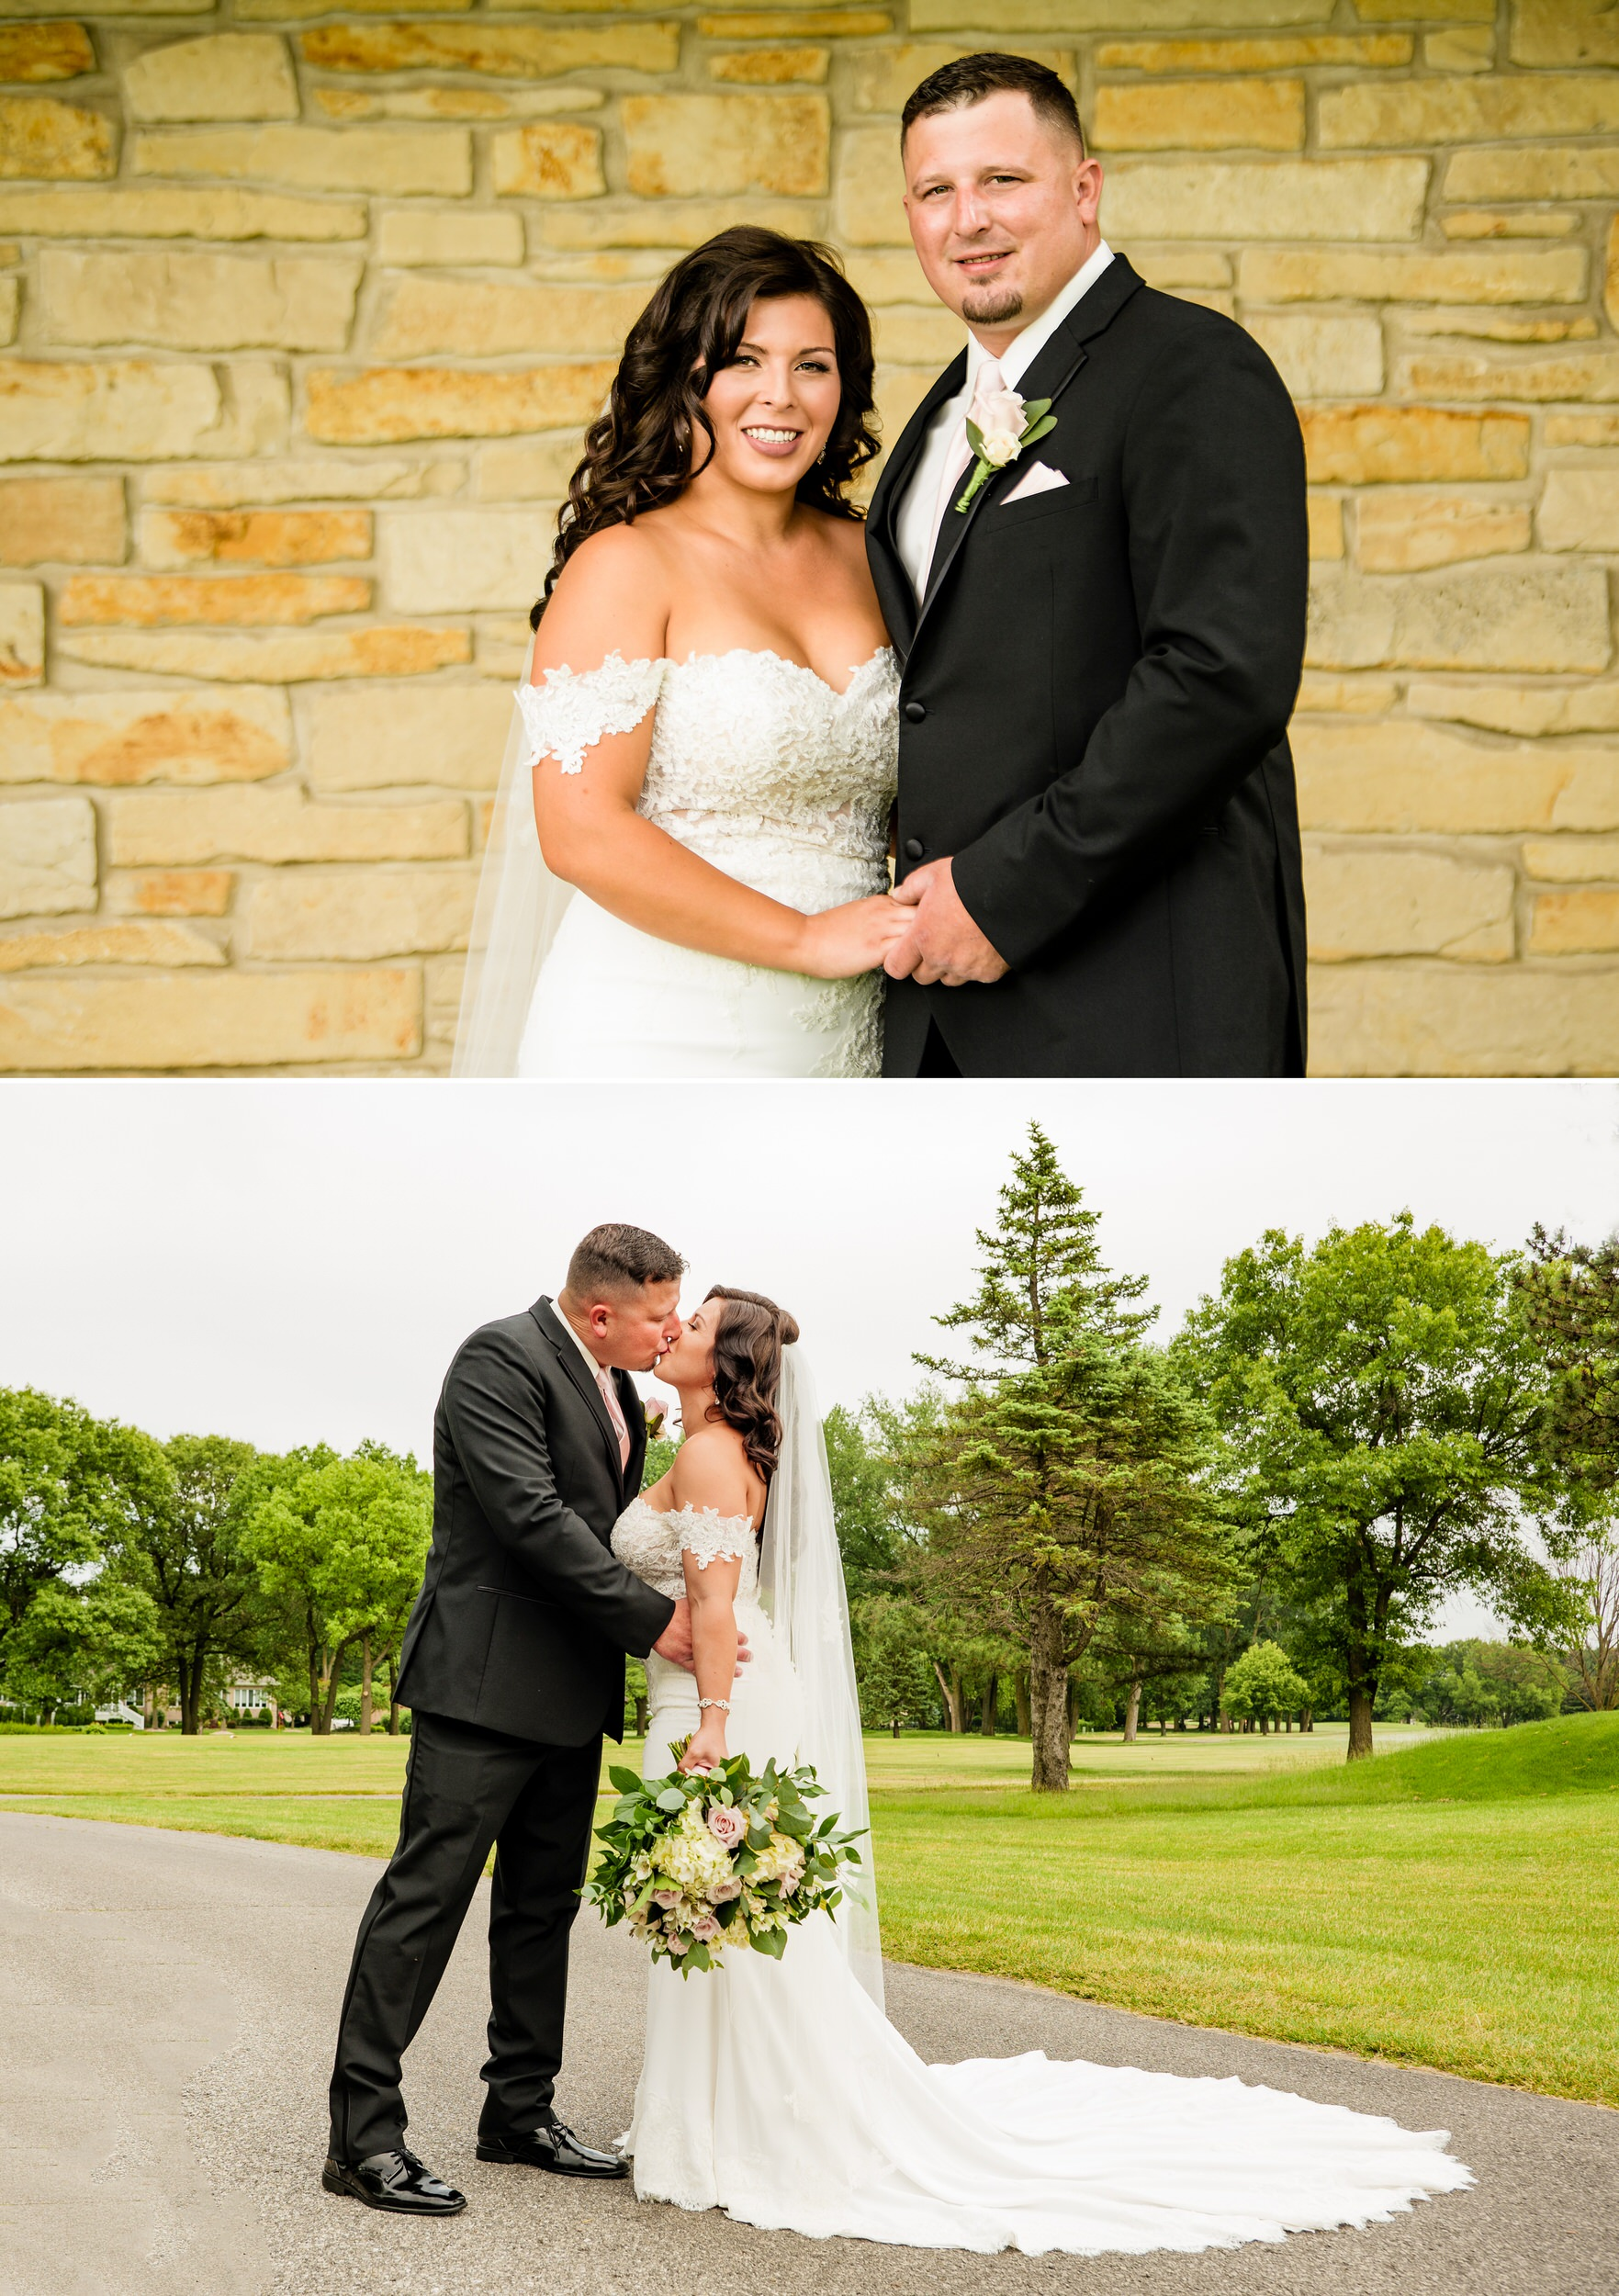 Wedding photos at Briar Ridge Country Club golf course.